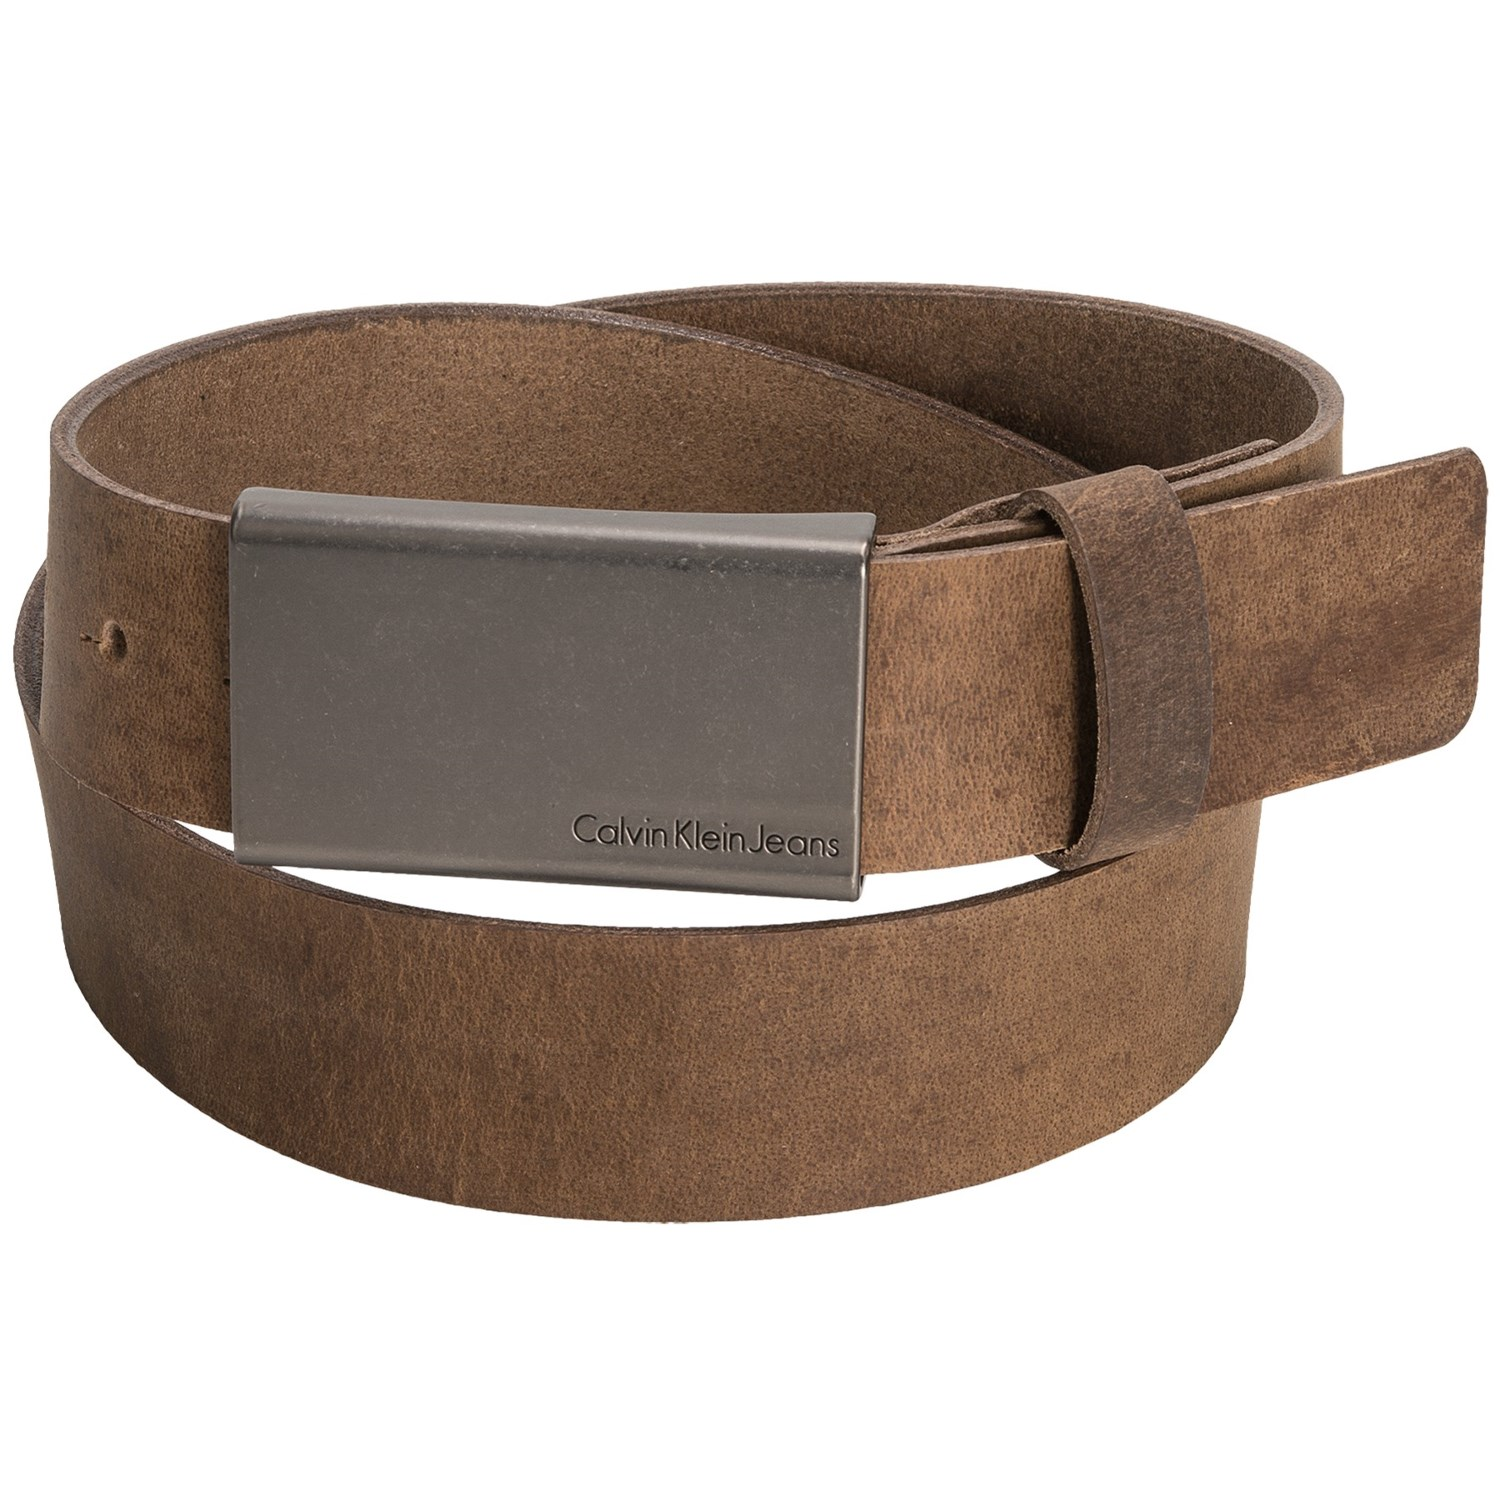 calvin klein flat leather belt for save 49